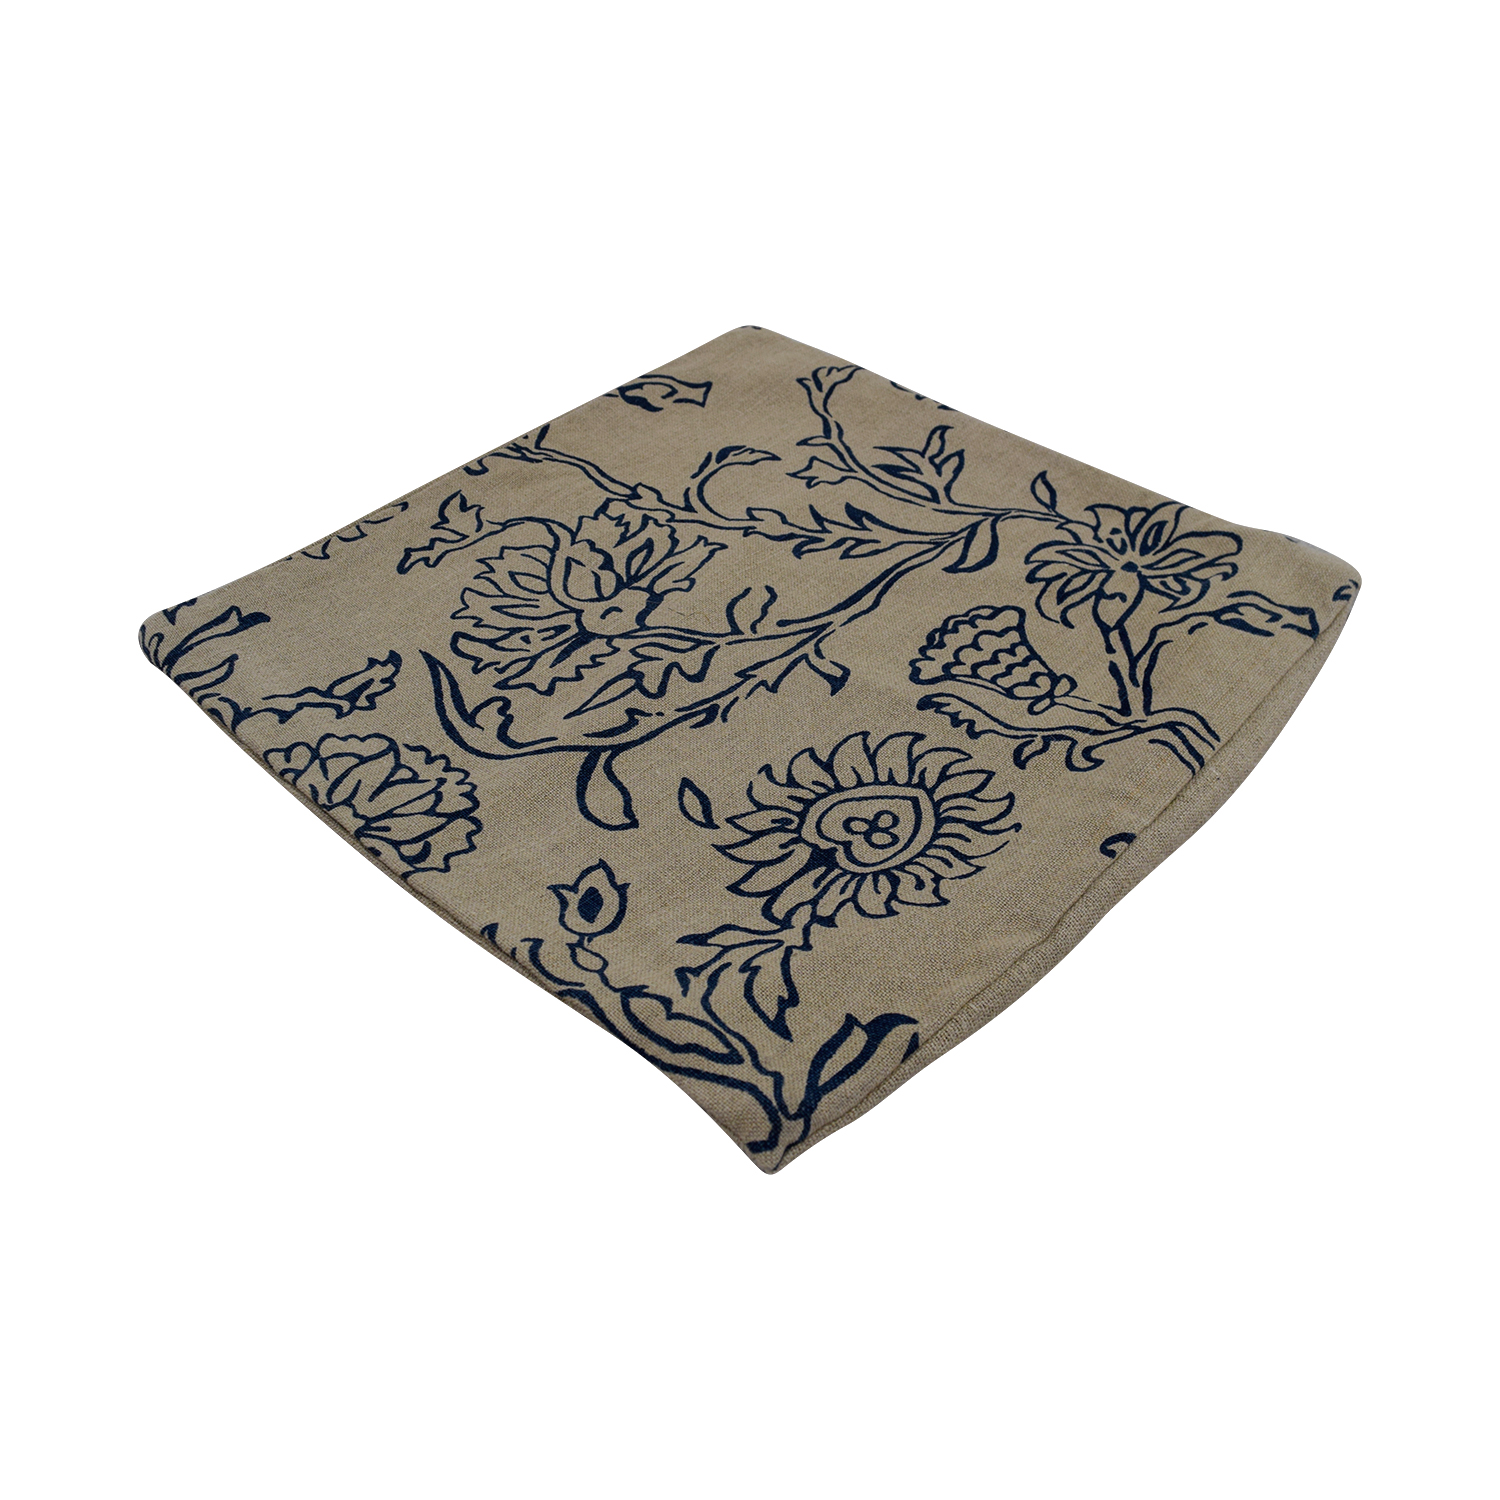 buy Obeetee Obeetee Floral Cushion Cover online